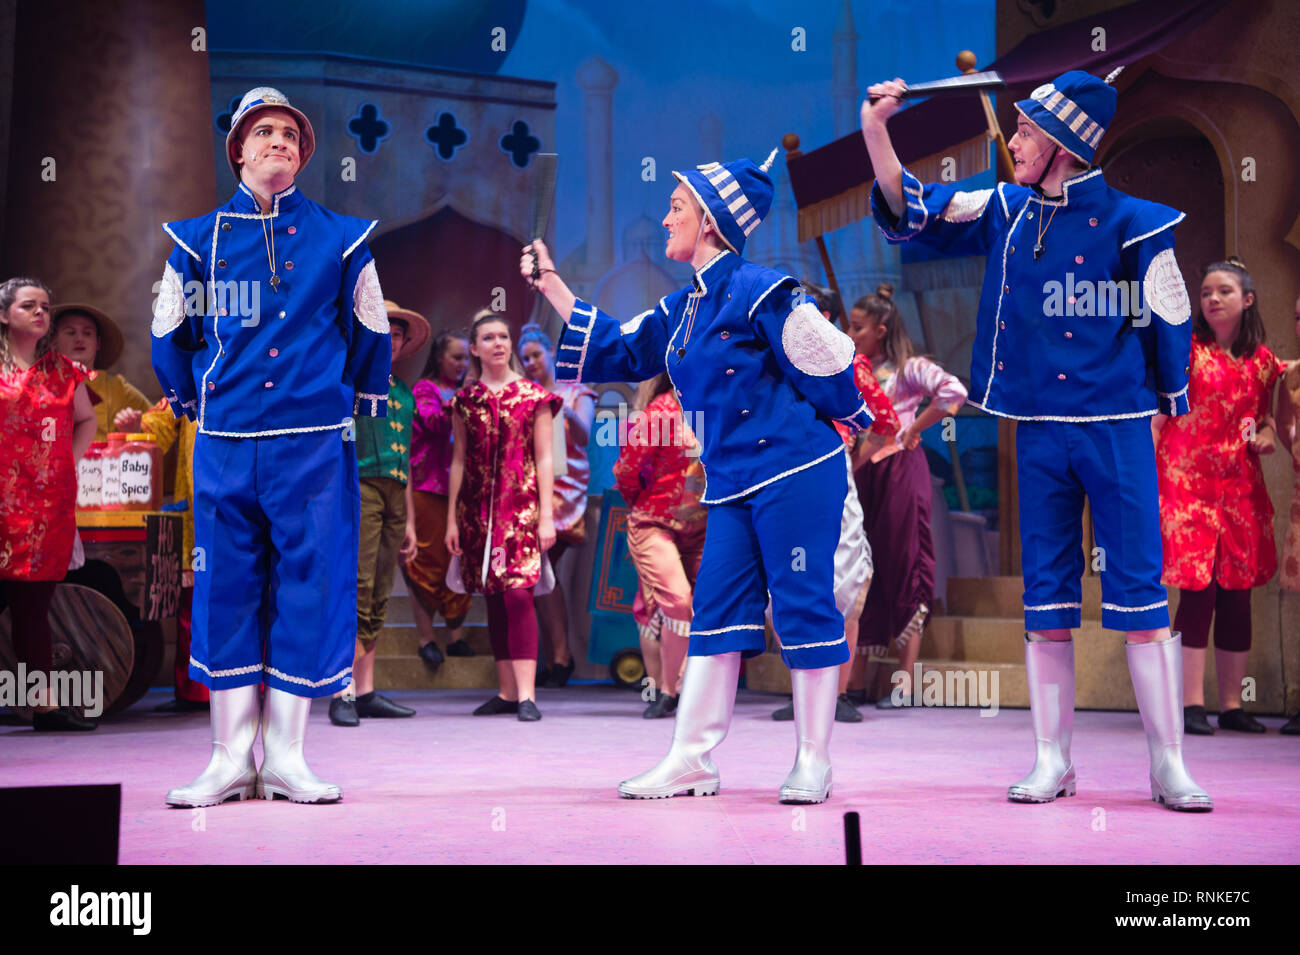 Traditional British pantomime Christmas family entertainment : an amateur non-professional  local theatre company (The Wardens) performing on stage at Aberystwyth Arts Centree. January 2019 - Stock Image